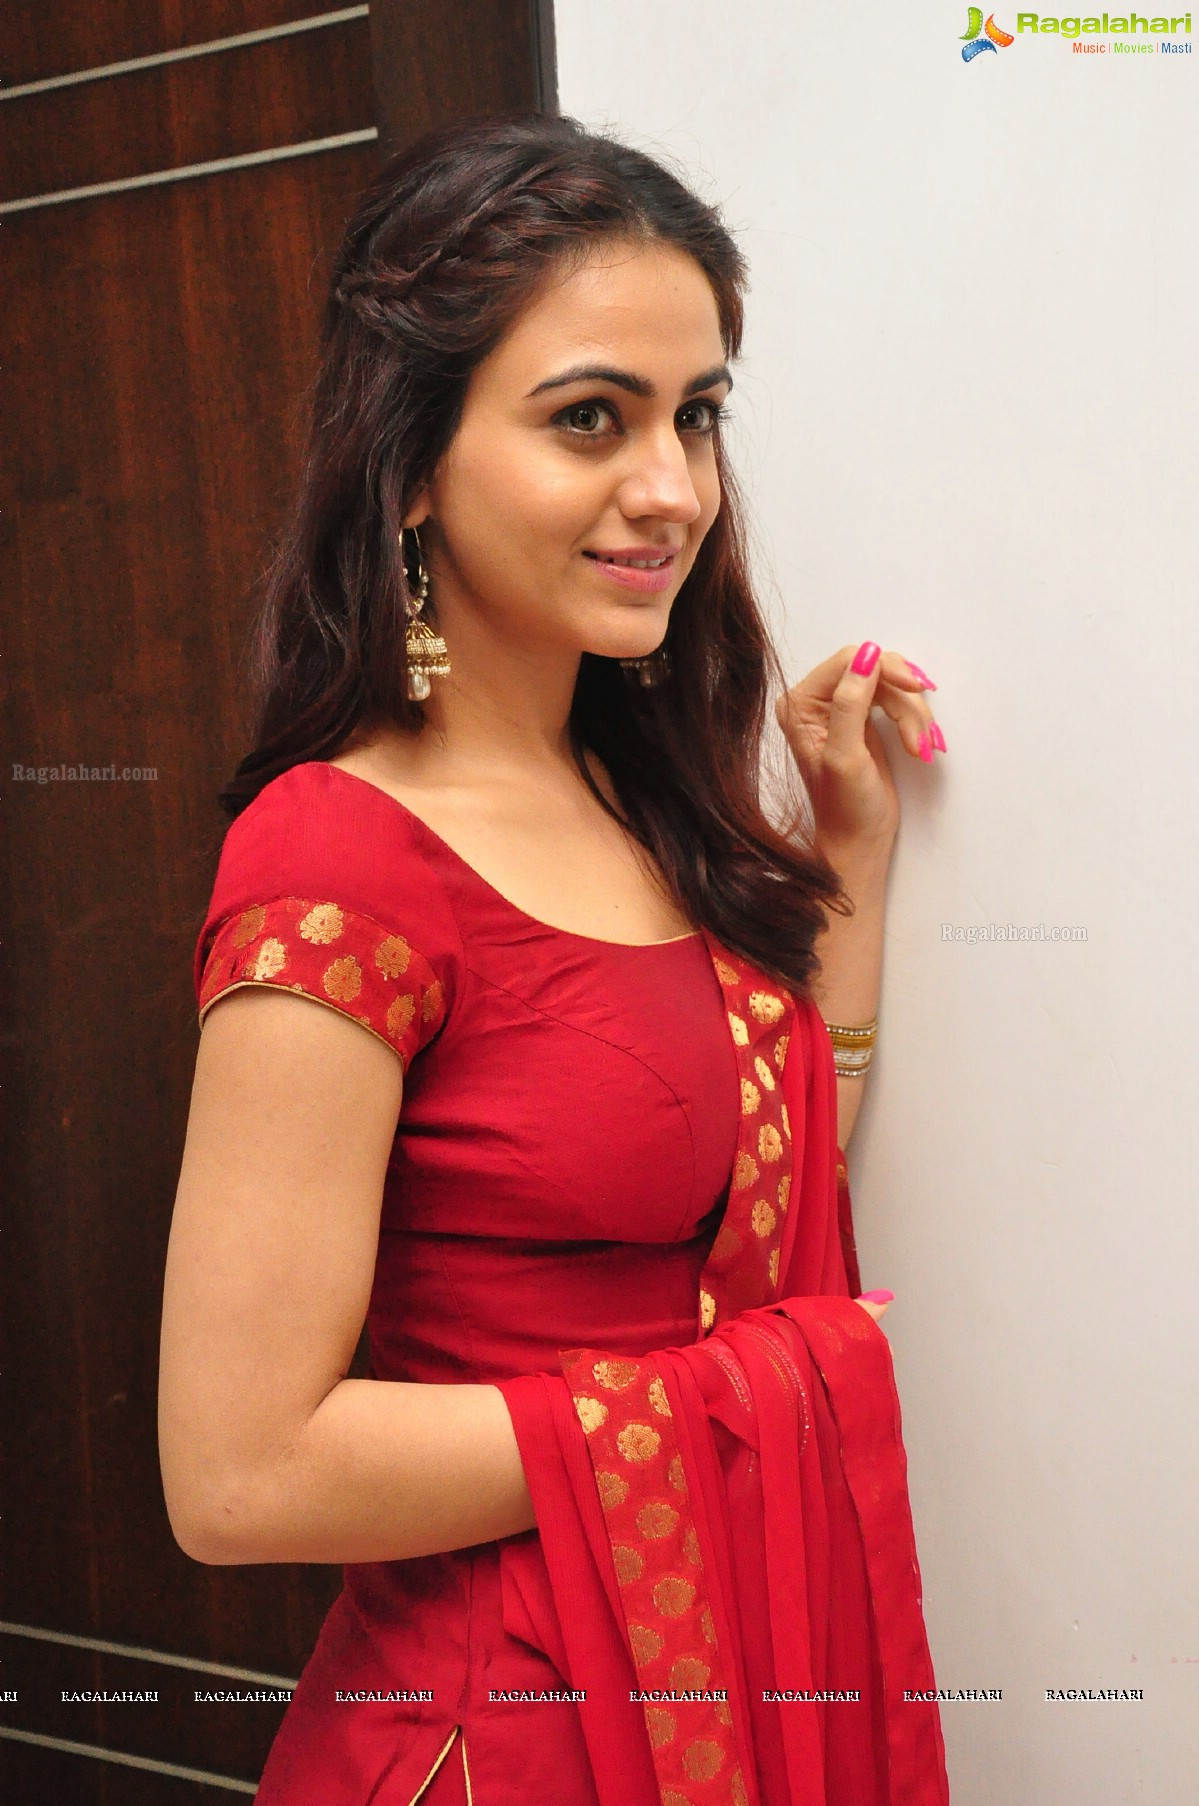 underwear Aksha Pardasany naked photo 2017